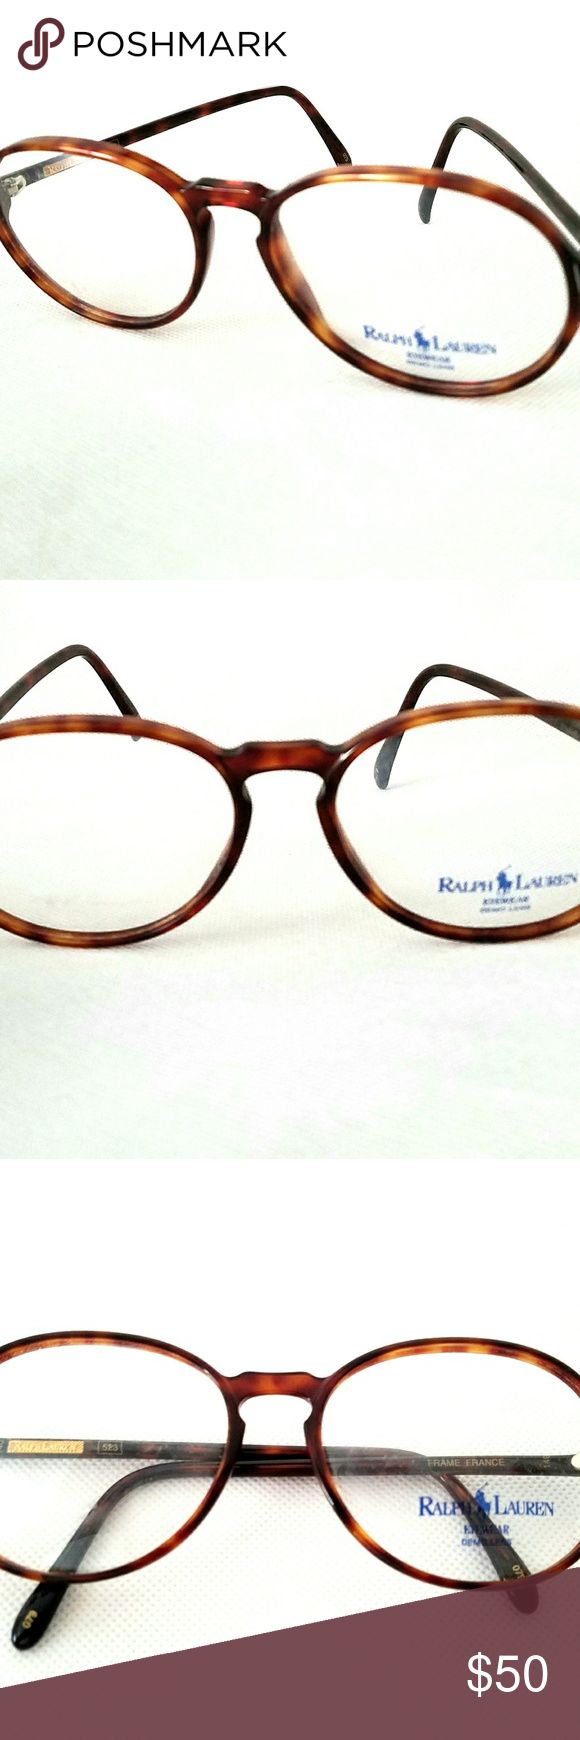 "Ralph Lauren ""523"" Eyeglasses Frame - Oval Vintage  Ralph Lauren 523 Tortoise 079 Eyeglasses.  Size: Eye 56 mm, Bridge 17 mm, Temple 140 mm.  Shape - Oval  100% New Old Stocks.  Made in France.  These frames demo lenses that can changed into prescription glasses or sunglasses by opticians  See the photos for clarification. Ralph Lauren Accessories Glasses"